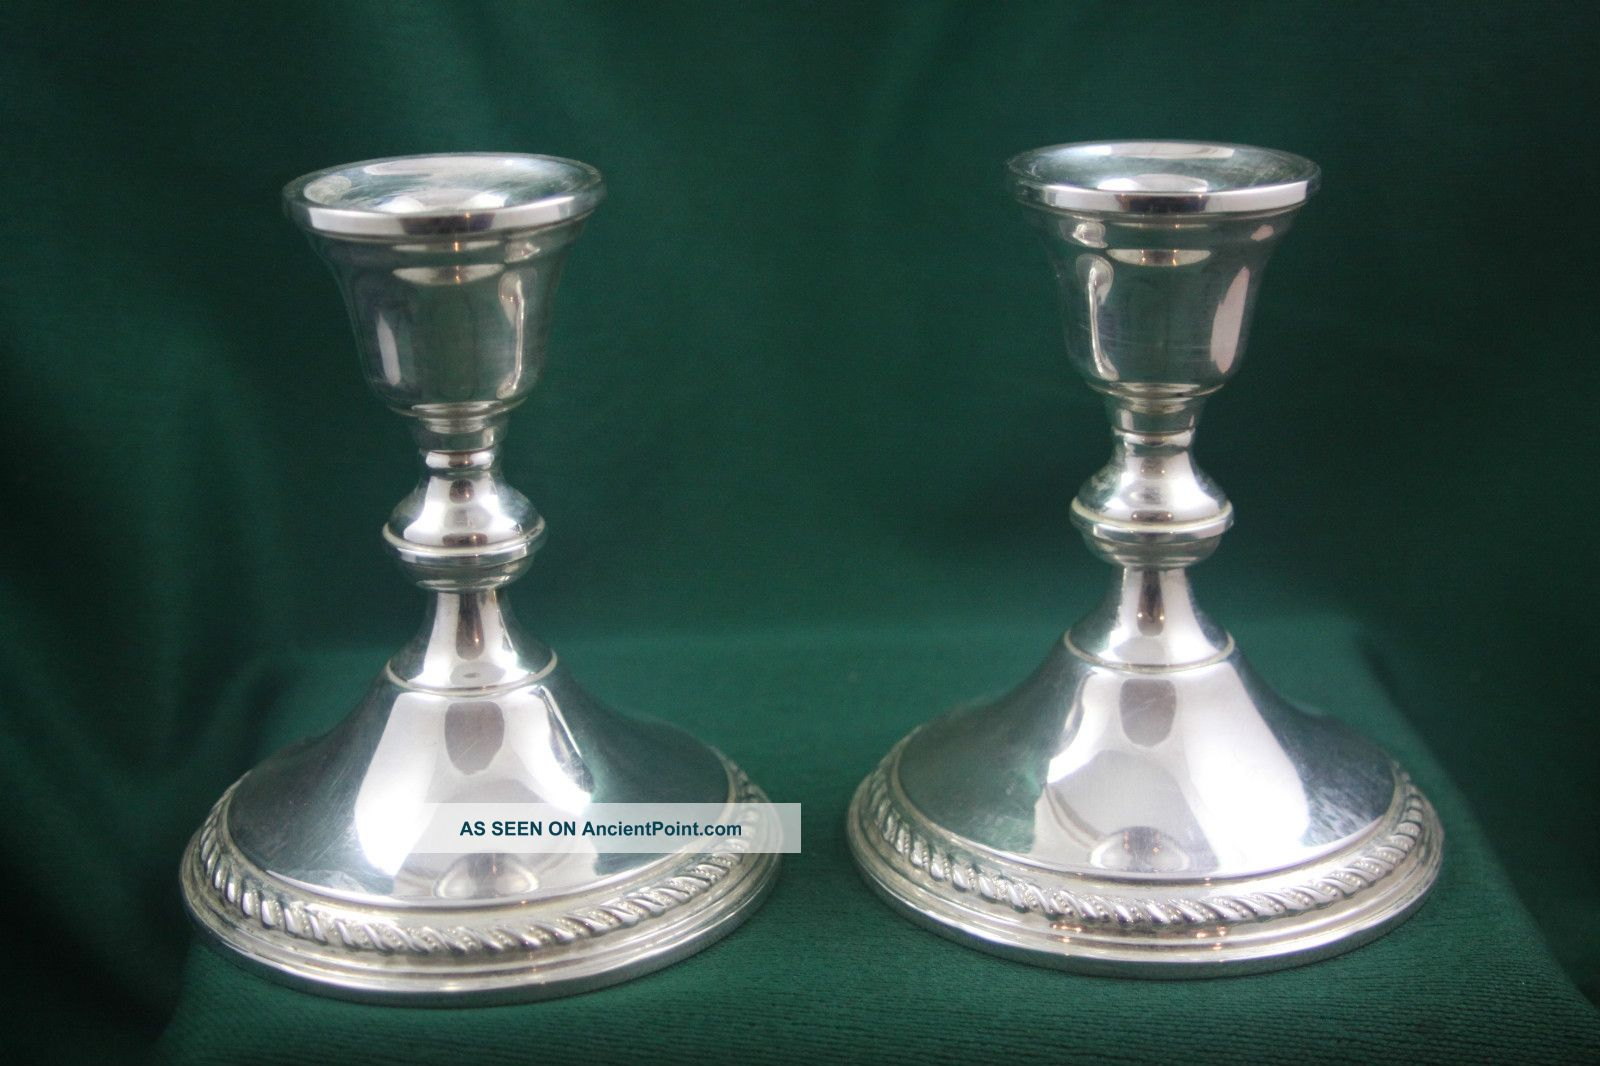 Vintage Pair Of Preisner Sterling Silver Candlesticks Candle Holders Candlesticks & Candelabra photo